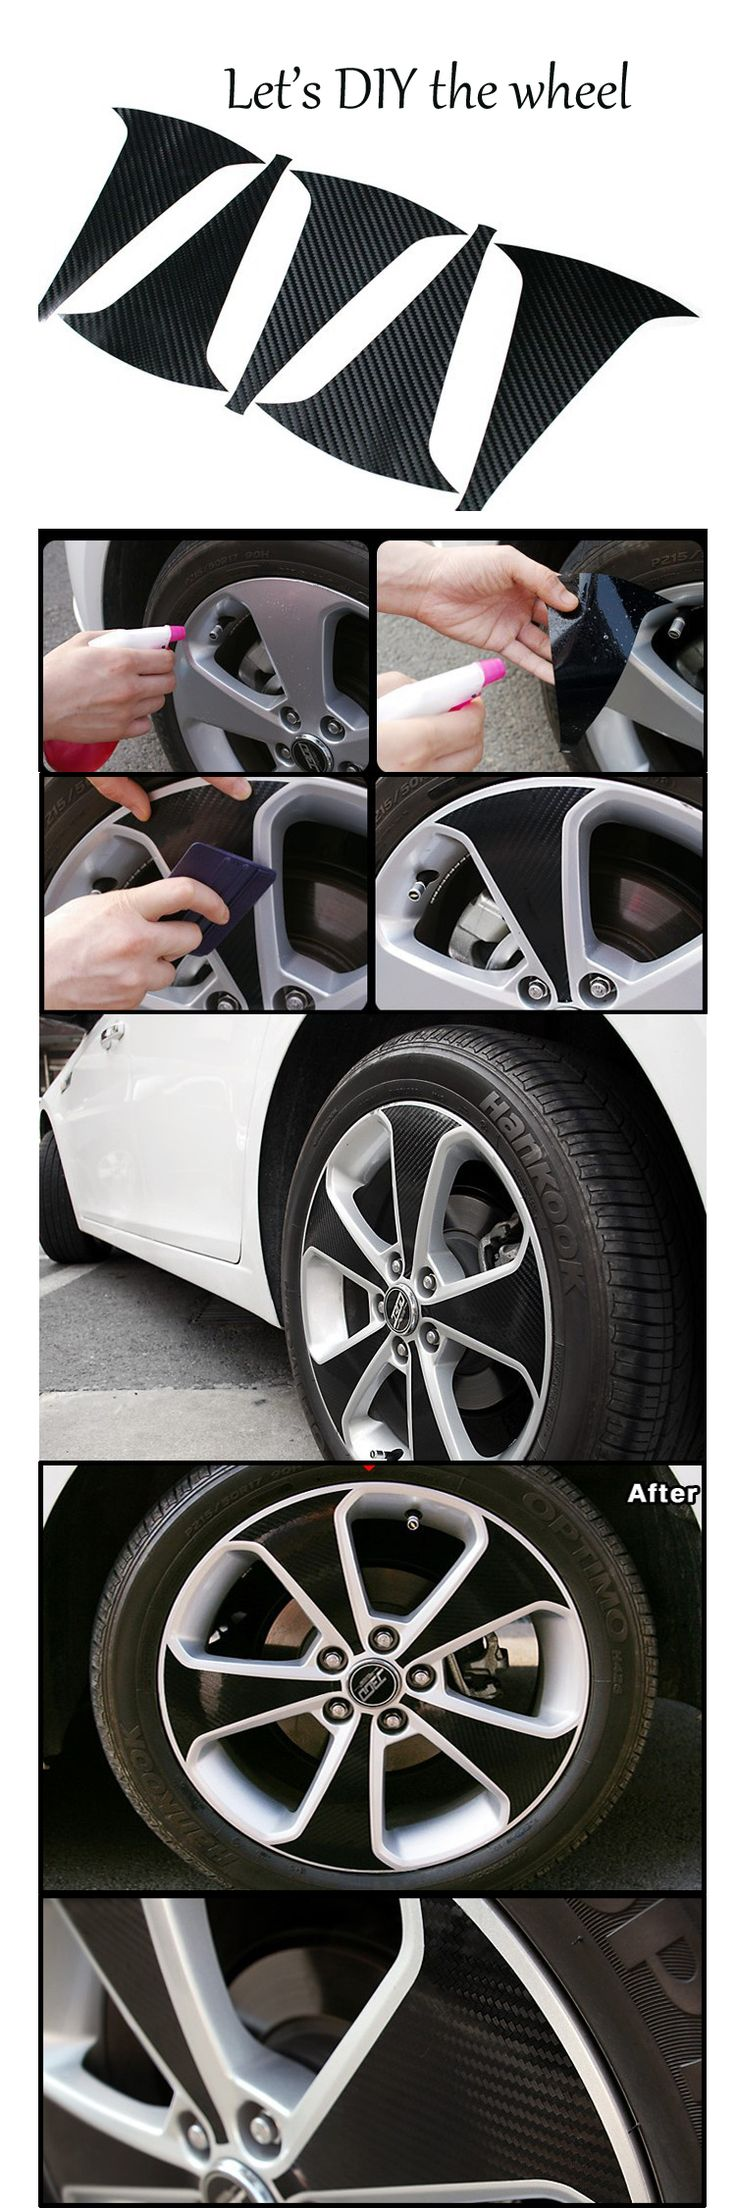 osell wholesale dropship 3D Carbon Fiber Vinyl Car Wrapping Foil Carbon Fiber Film 1.27*0.5m $2.44